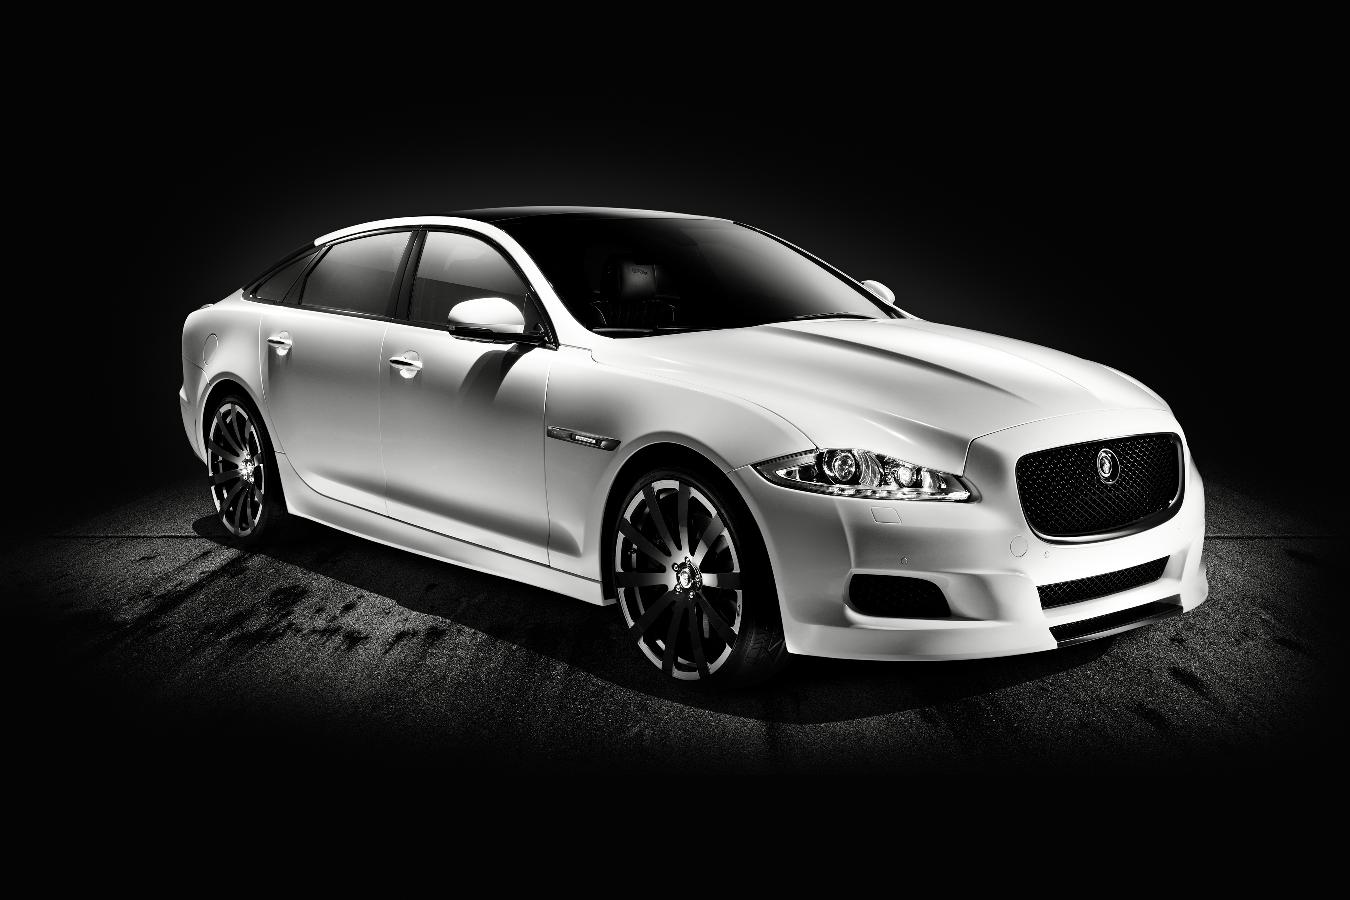 Jaguar Has Revealed A Specially Commissioned XJ Concept Car To Commemorate  The Brandu0027s 75th Anniversary.